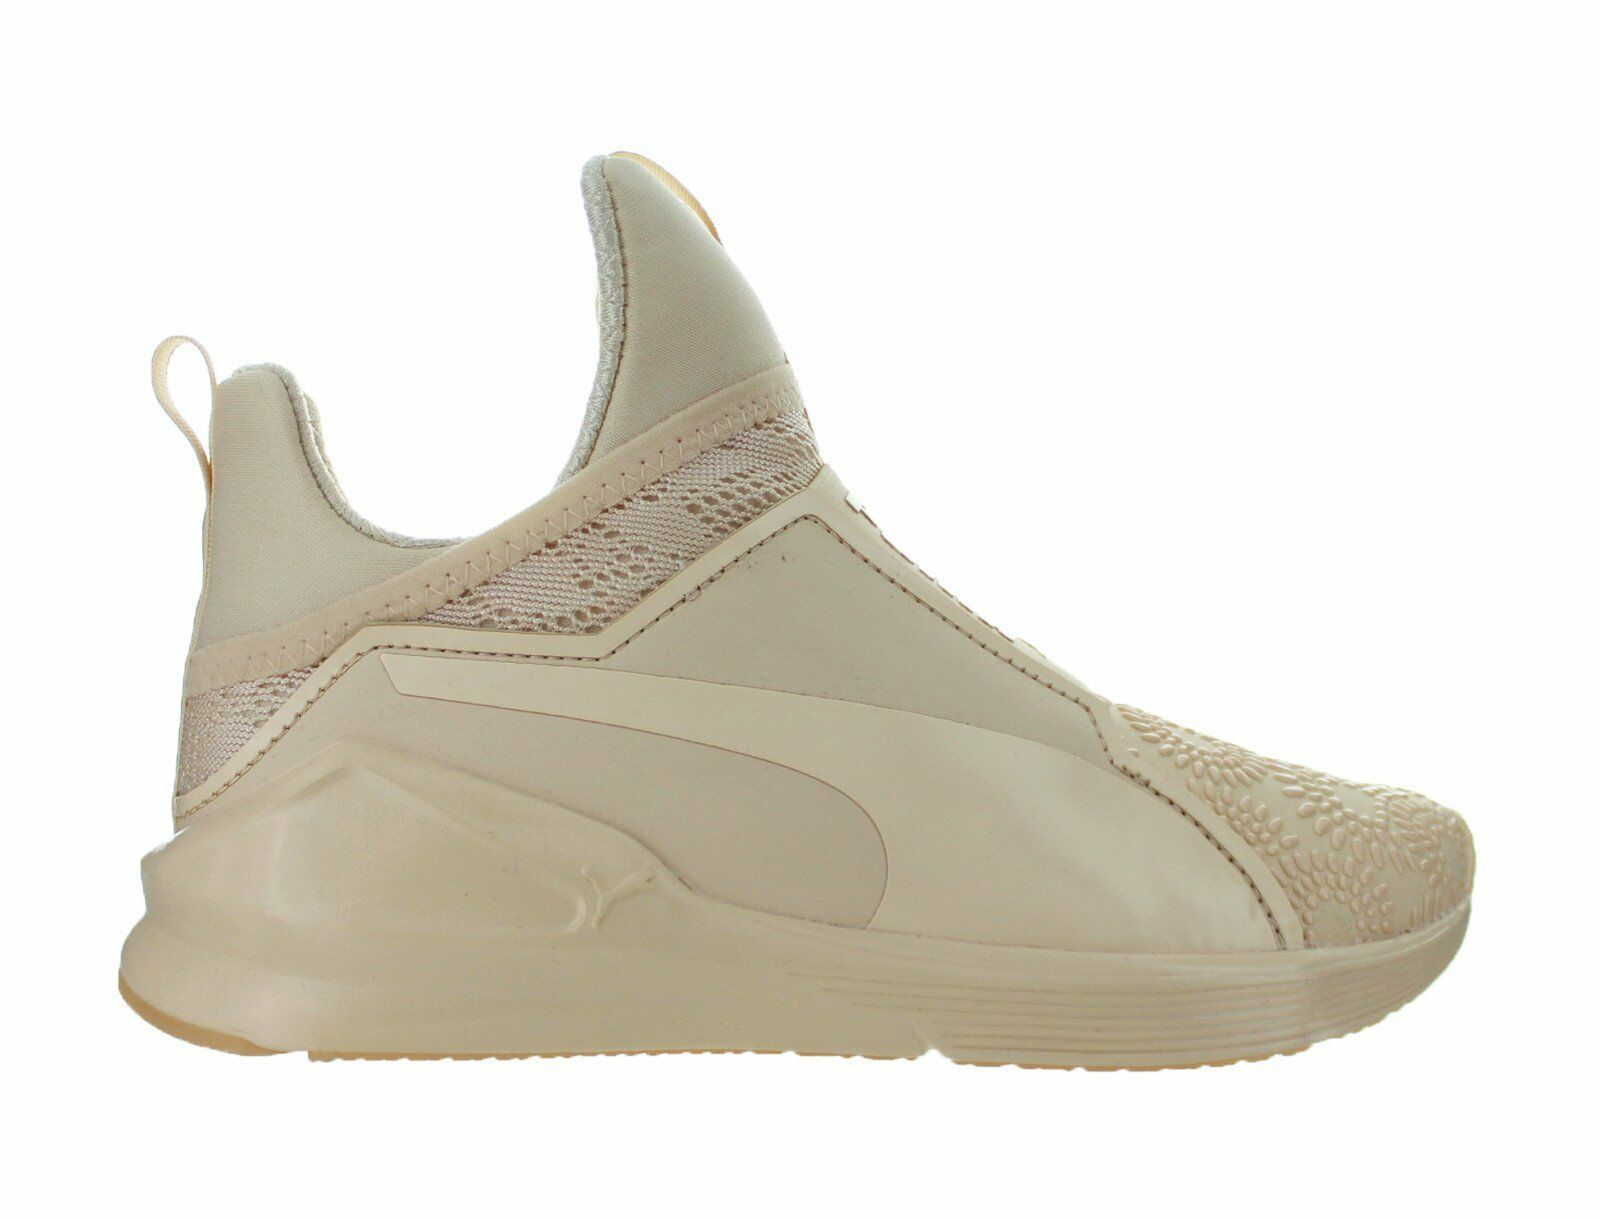 Womens Puma Fierce KRM Dawn White 18986603